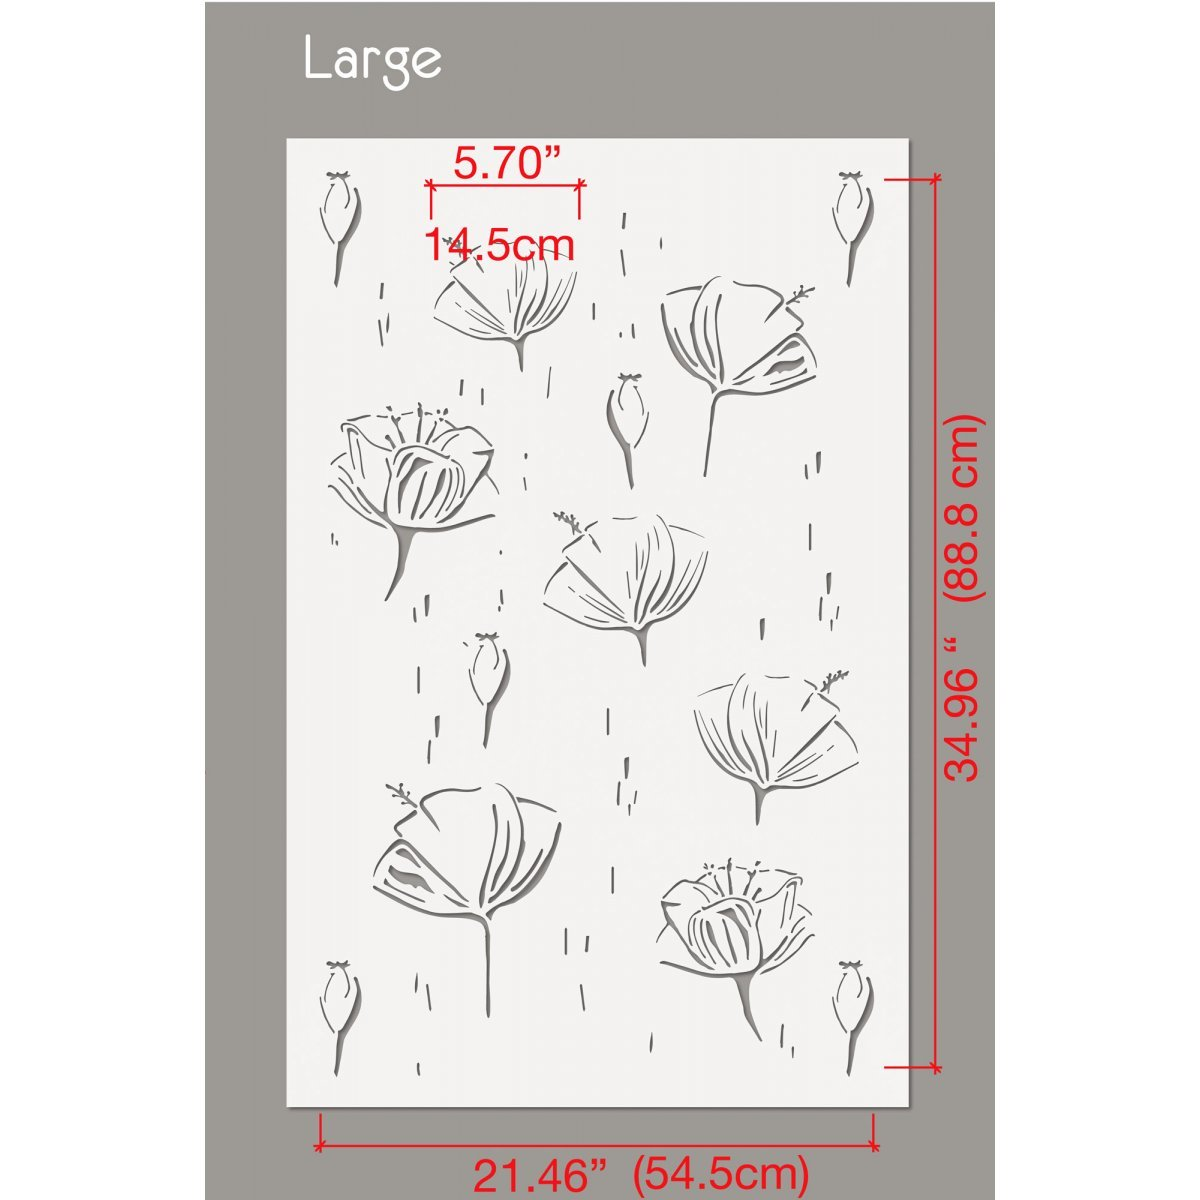 SUMMER FLOWERS / Reusable Allover Large Wall Stencils for Painting